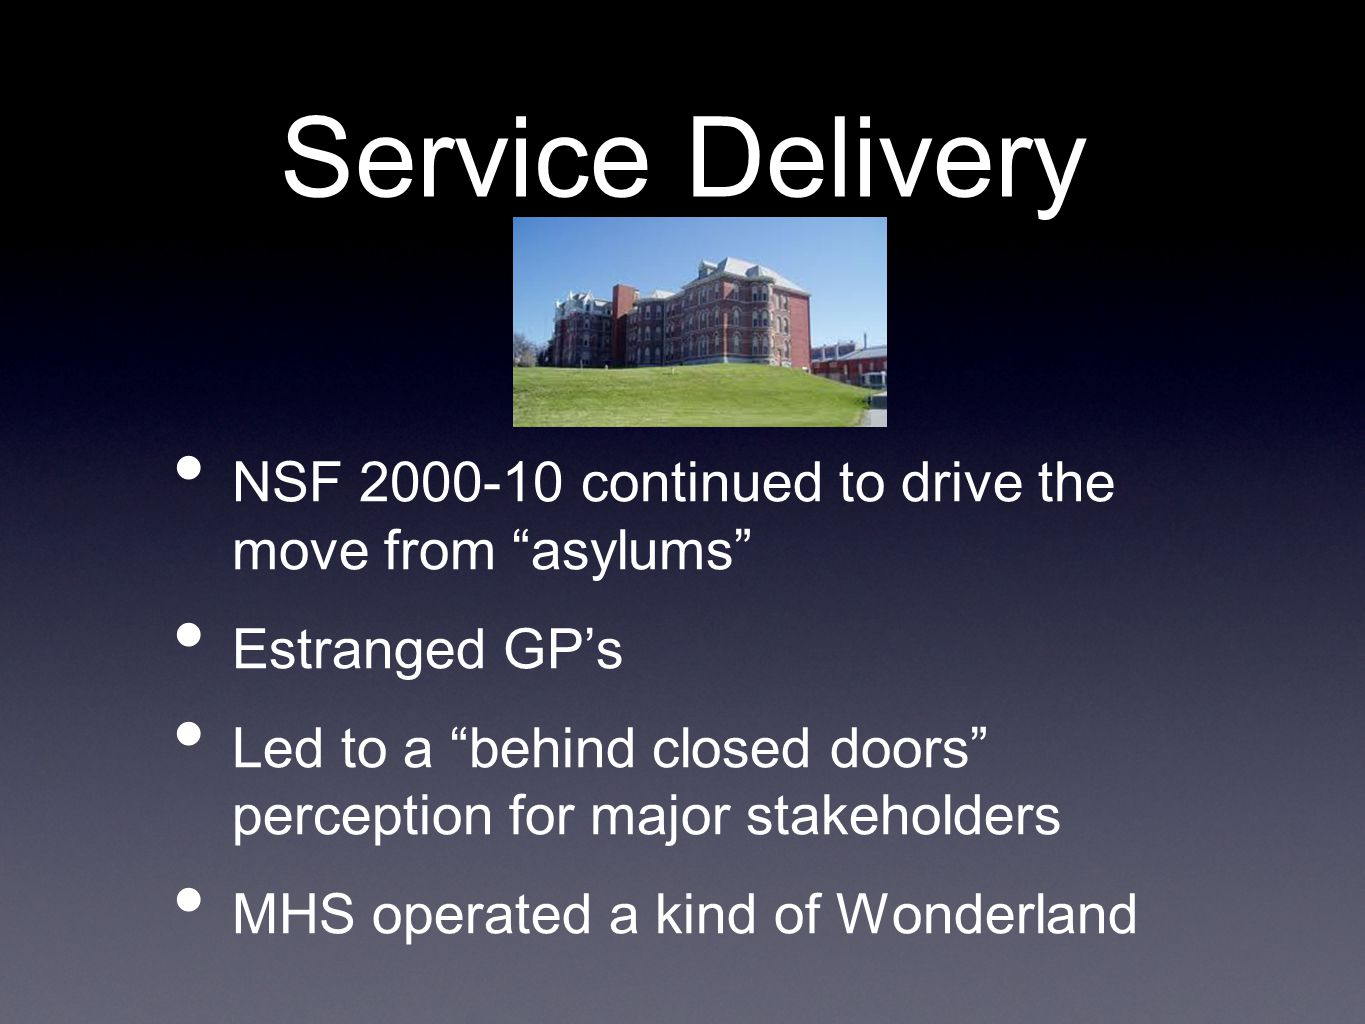 Wonderland Through NSF years Contained Managed symptoms and behaviour Maintained Post NSF must also achieve Enablement